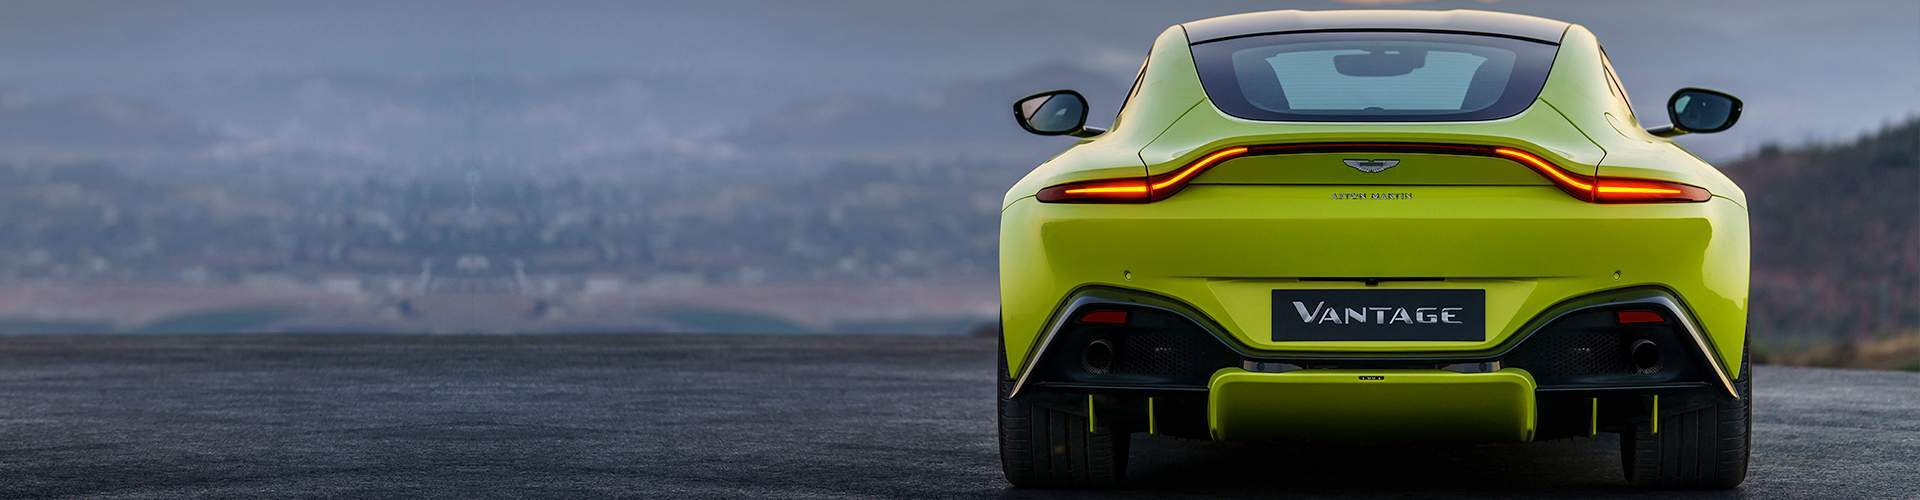 New Vantage at Aston Martin of Dallas